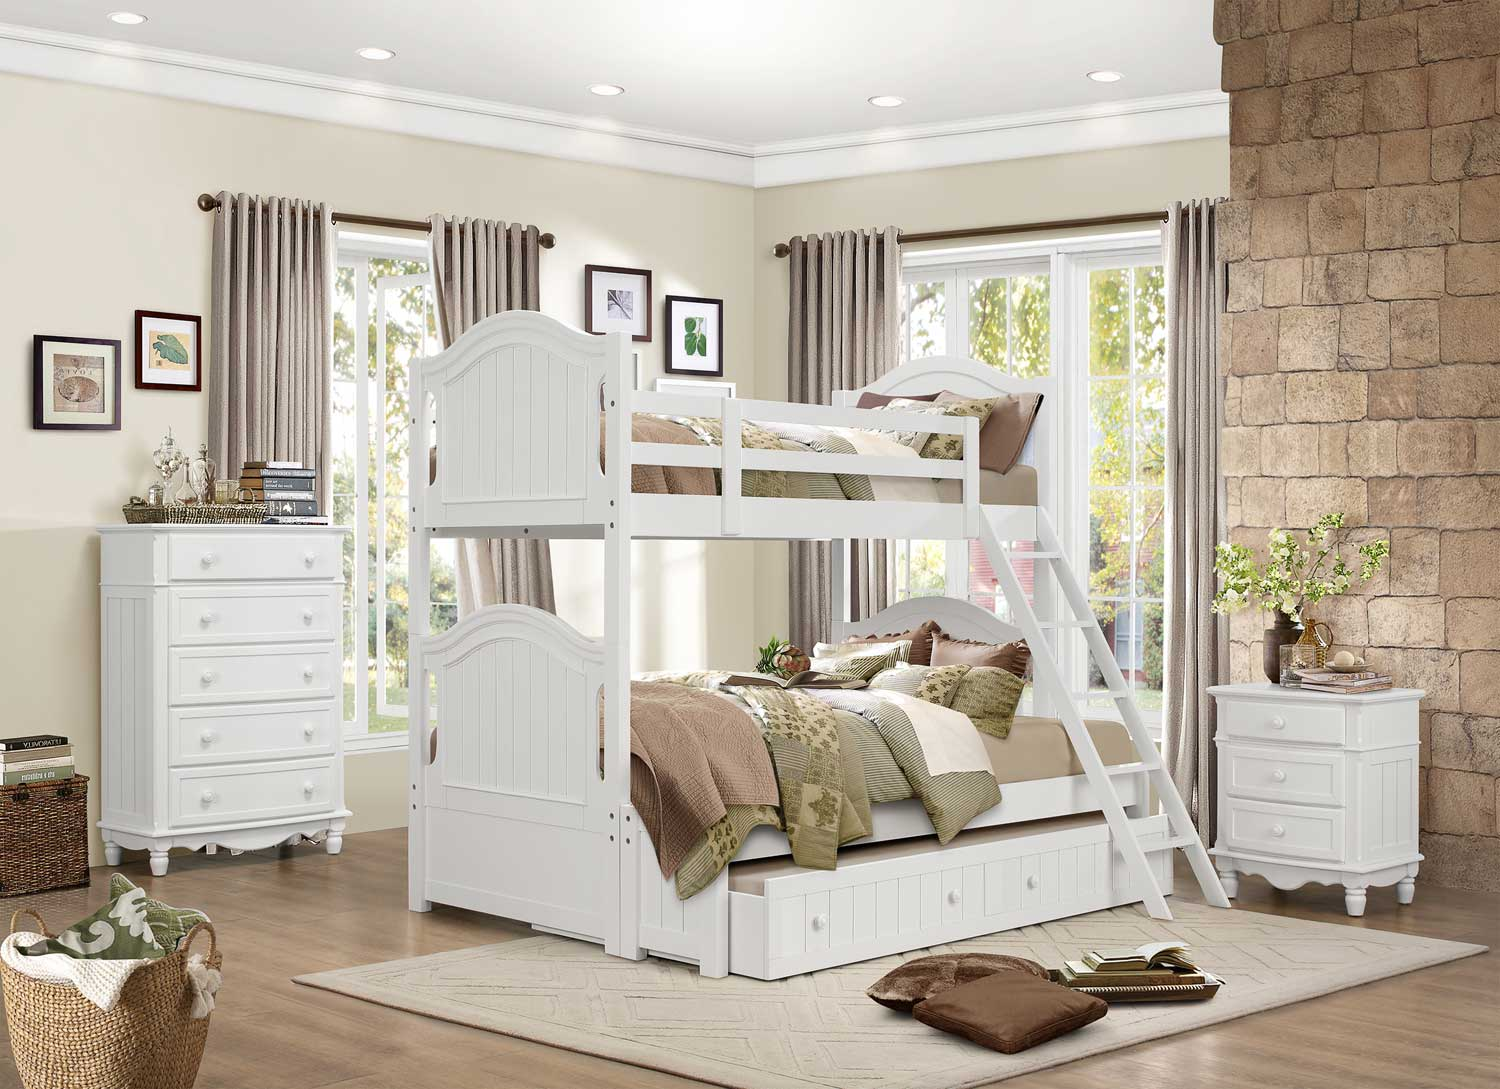 Homelegance Clementine Bunk Bedroom Set -